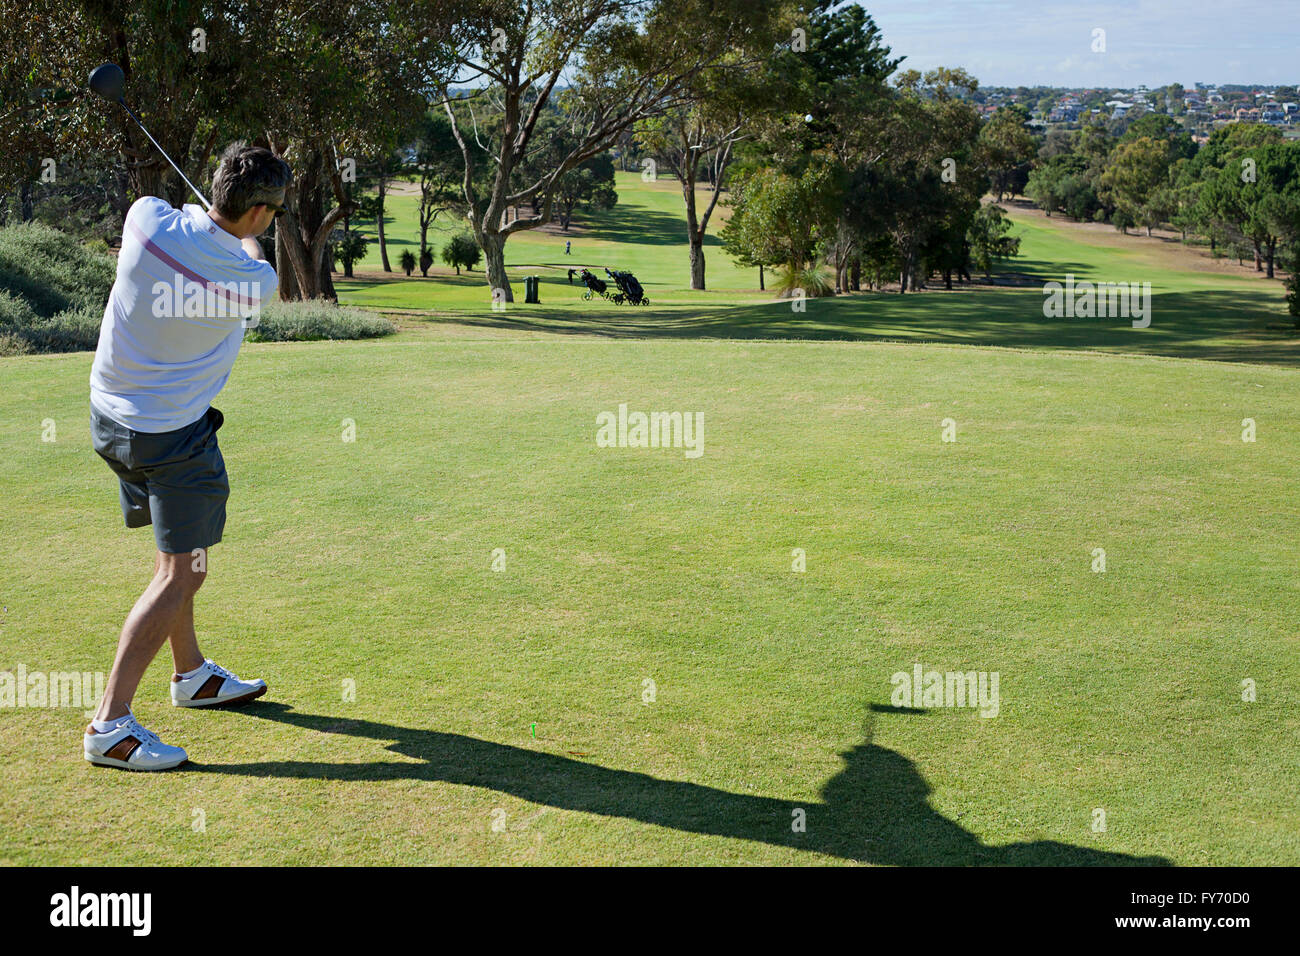 A young golfer in the finishing position, after hitting a tee shot - Stock Image